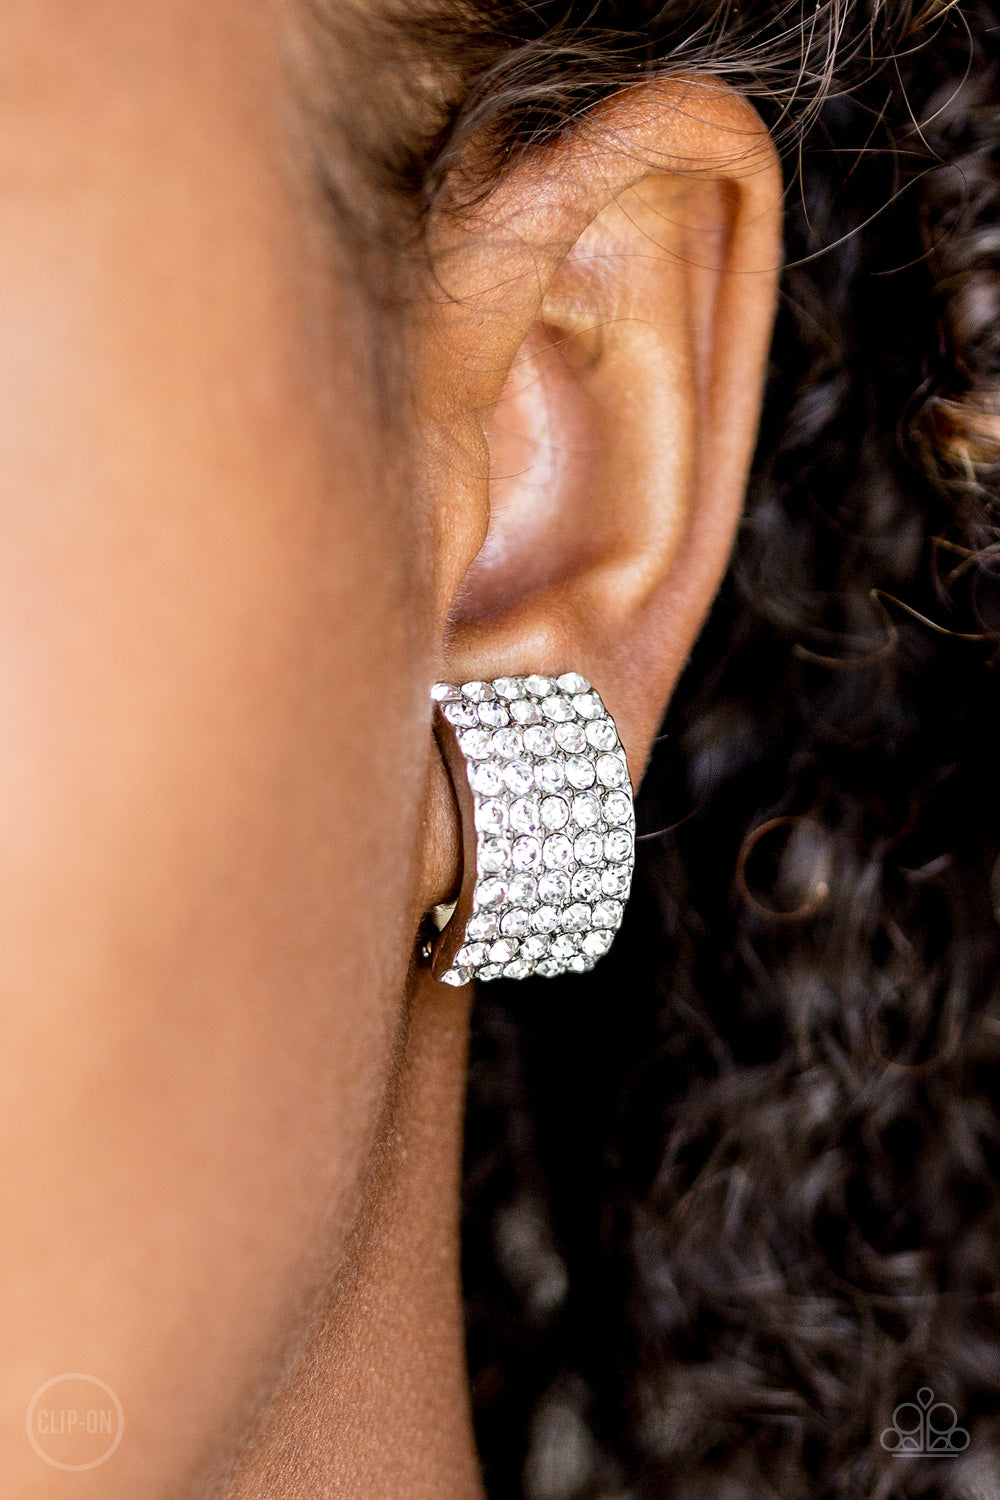 Paparazzi Accessories Hollywood Hotshot - White Clip-on Earrings - Lady T Accessories